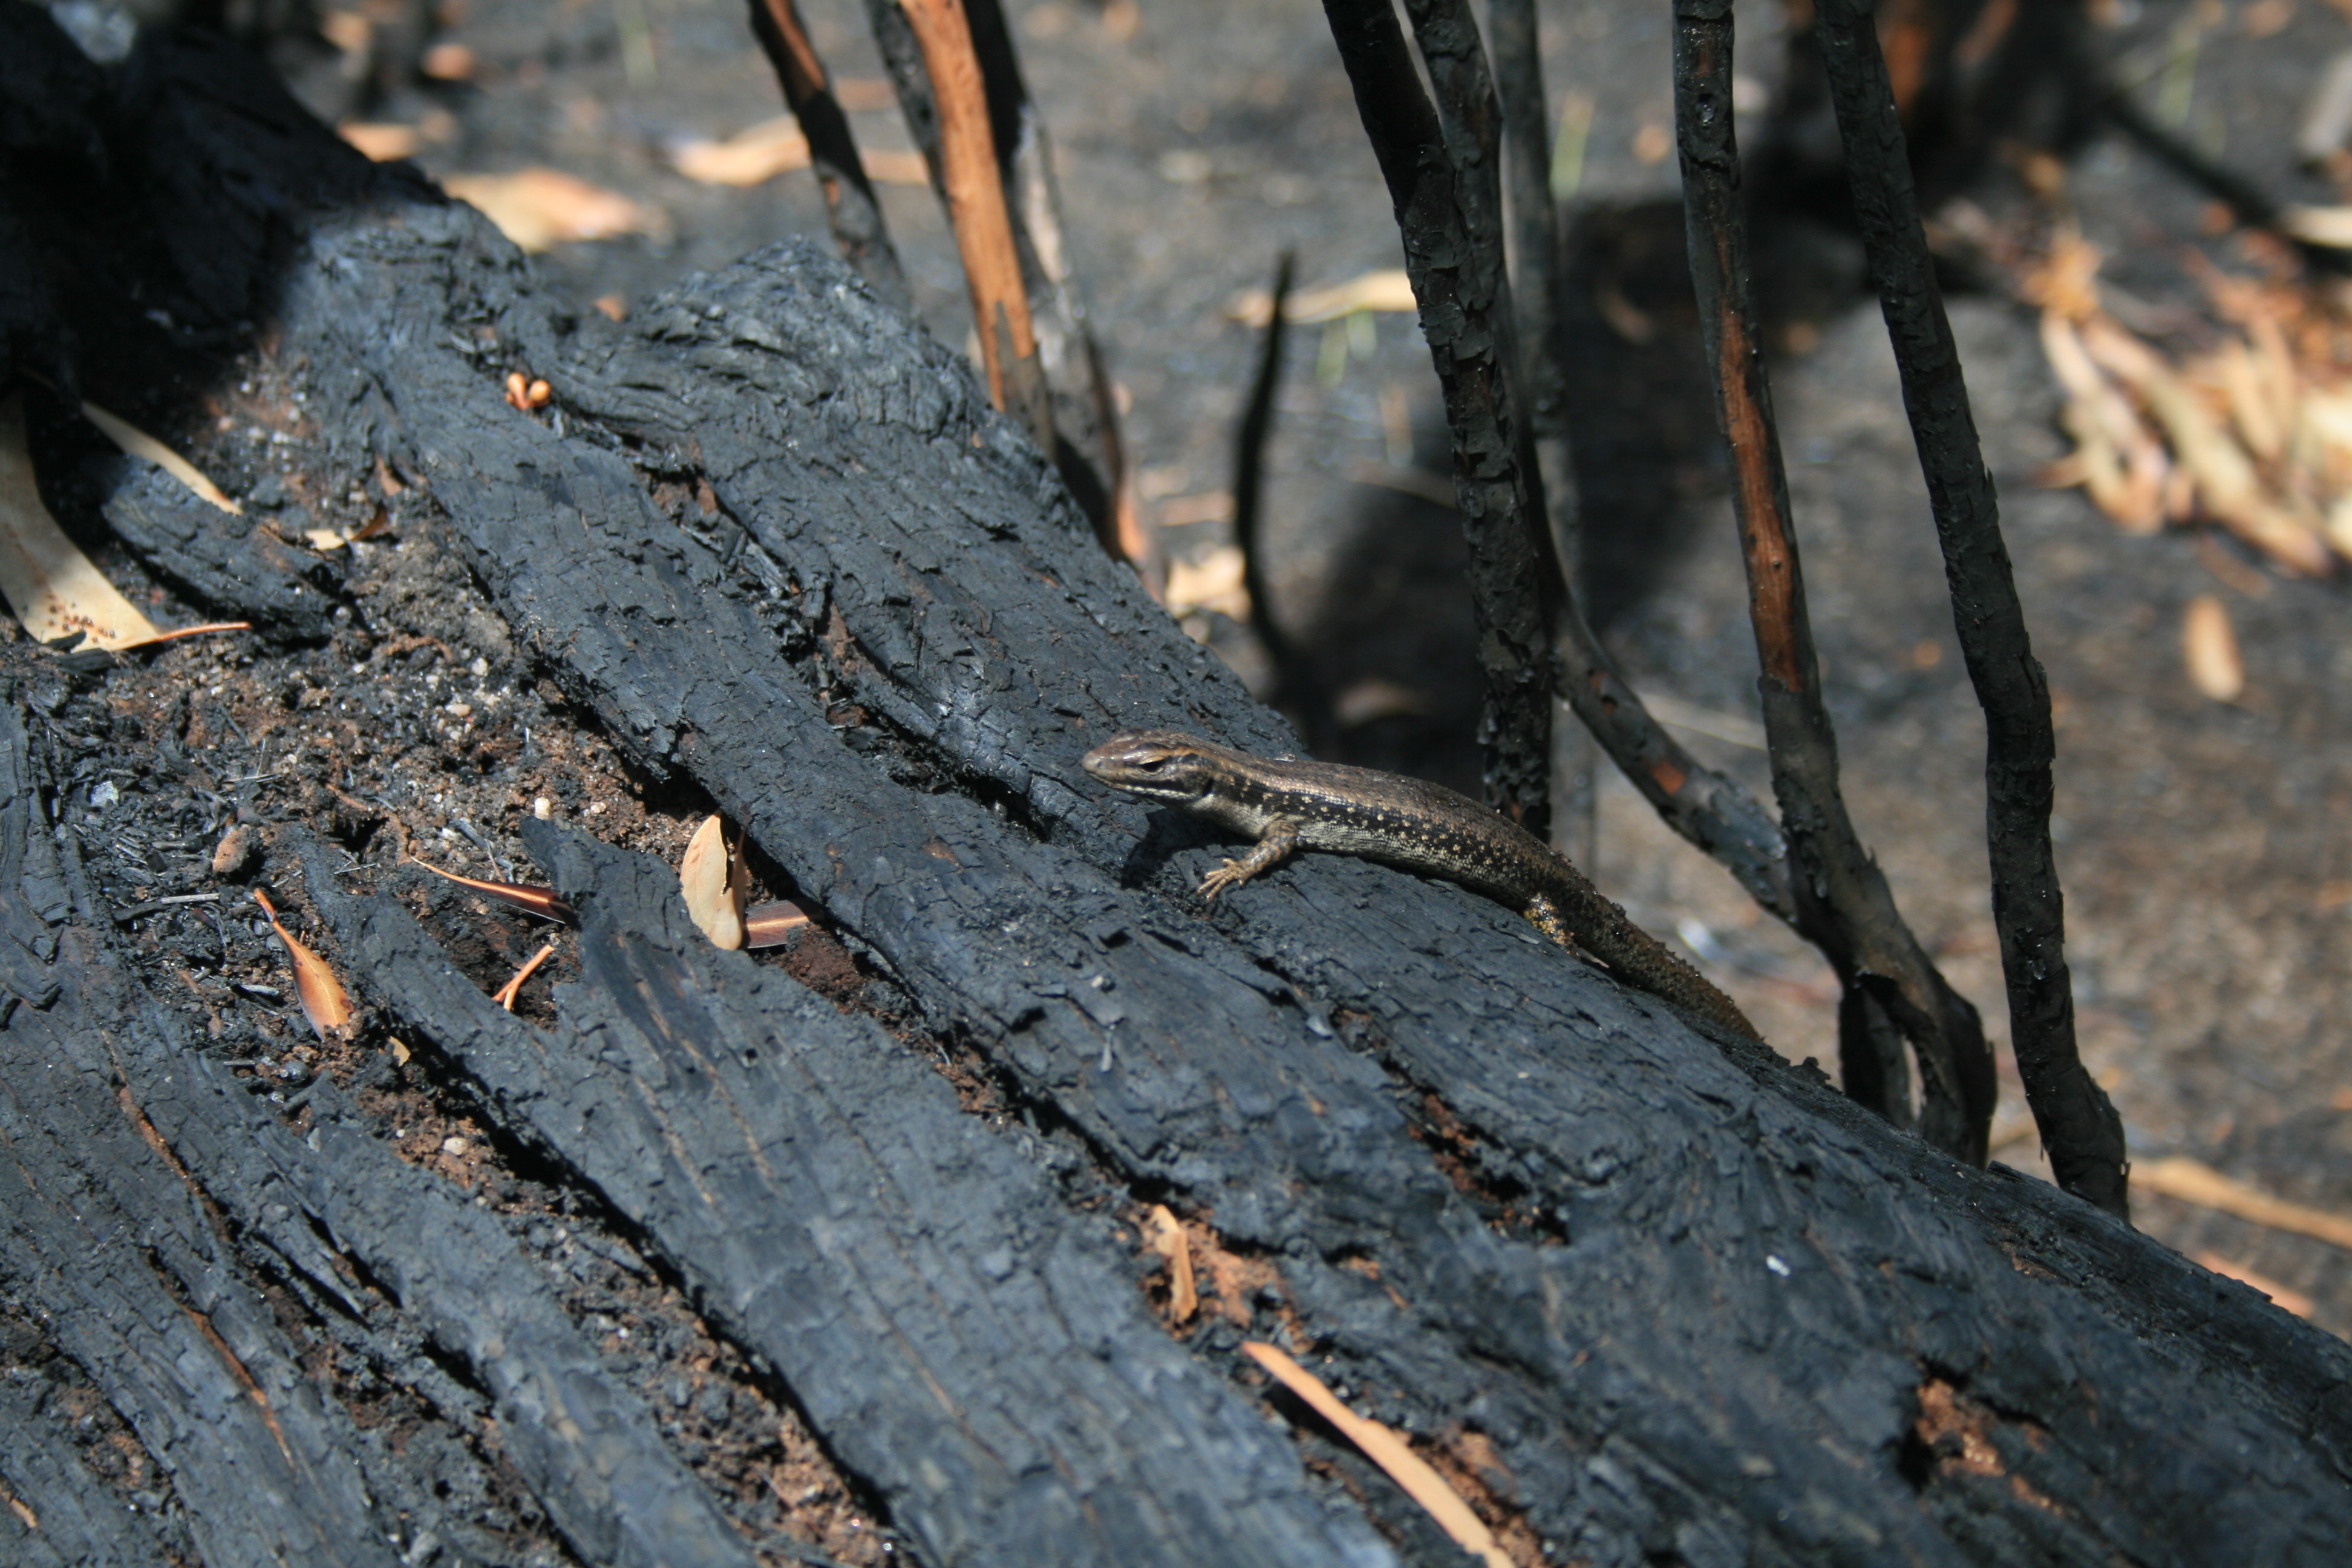 Yellow-bellied water skink